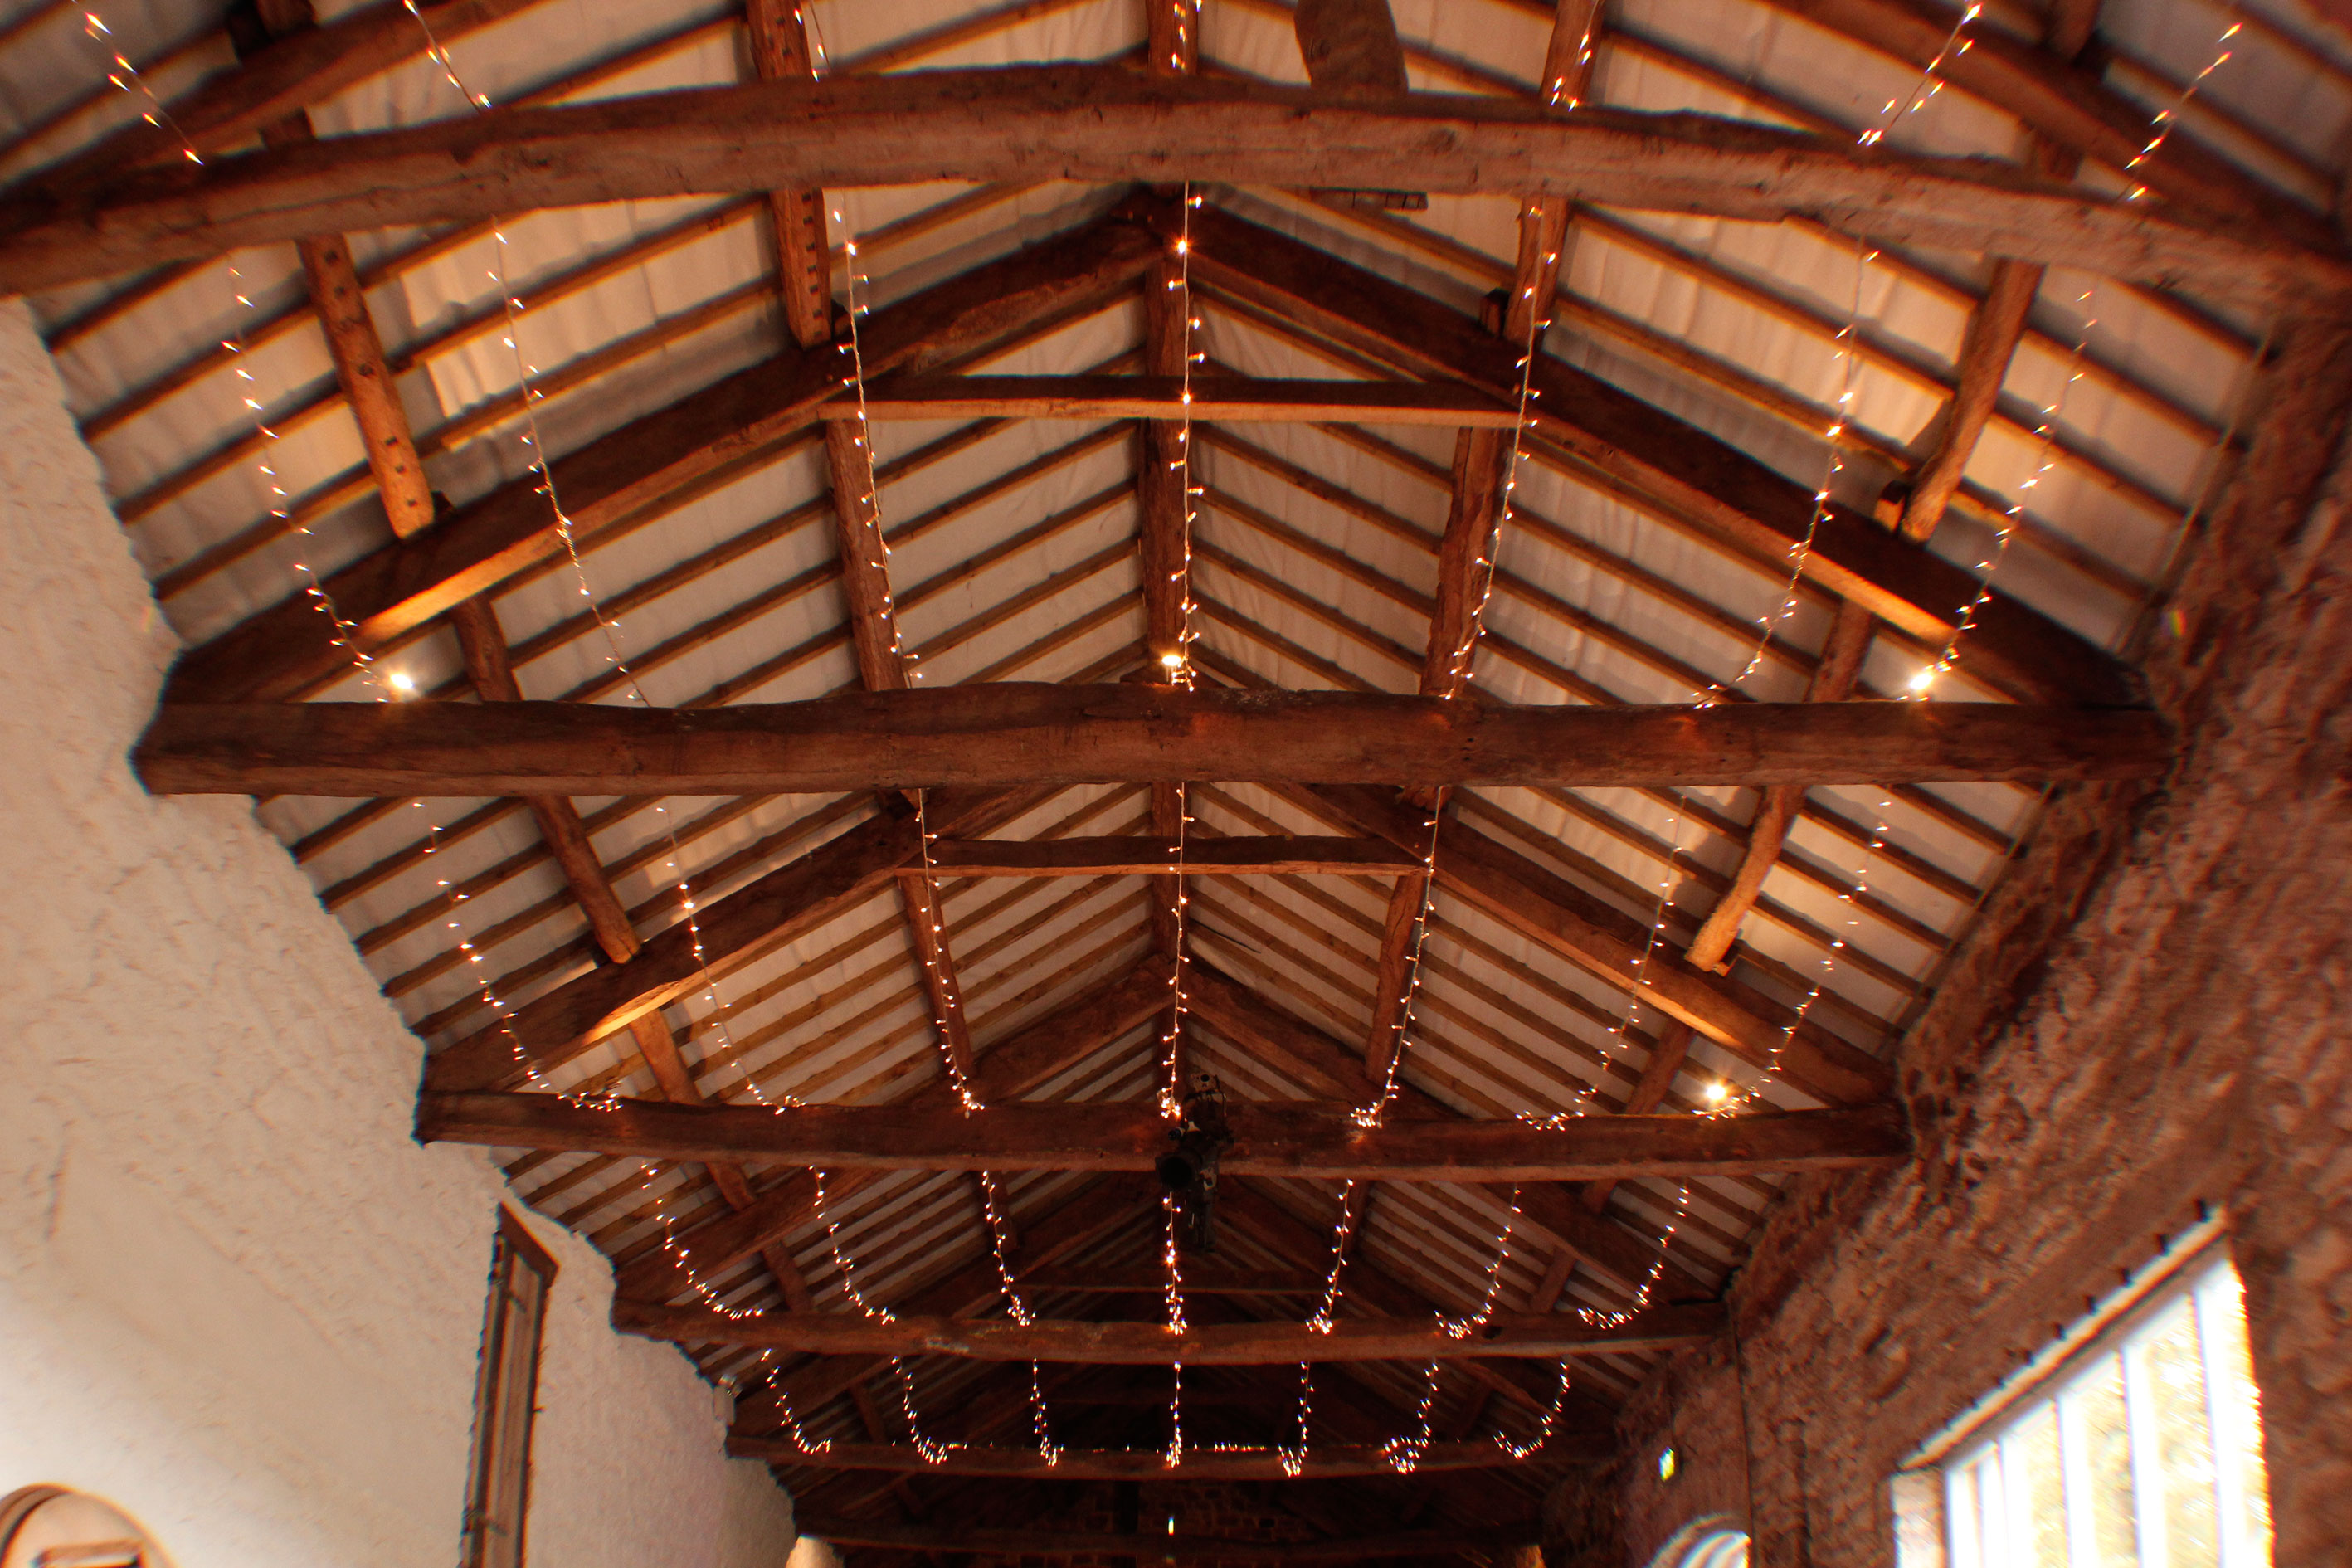 ... Fairy-Light-Roof-Askham-Hall-Barn-Wedding-SVLHire & Askham Hall Wedding Lighting - SVL Hire azcodes.com